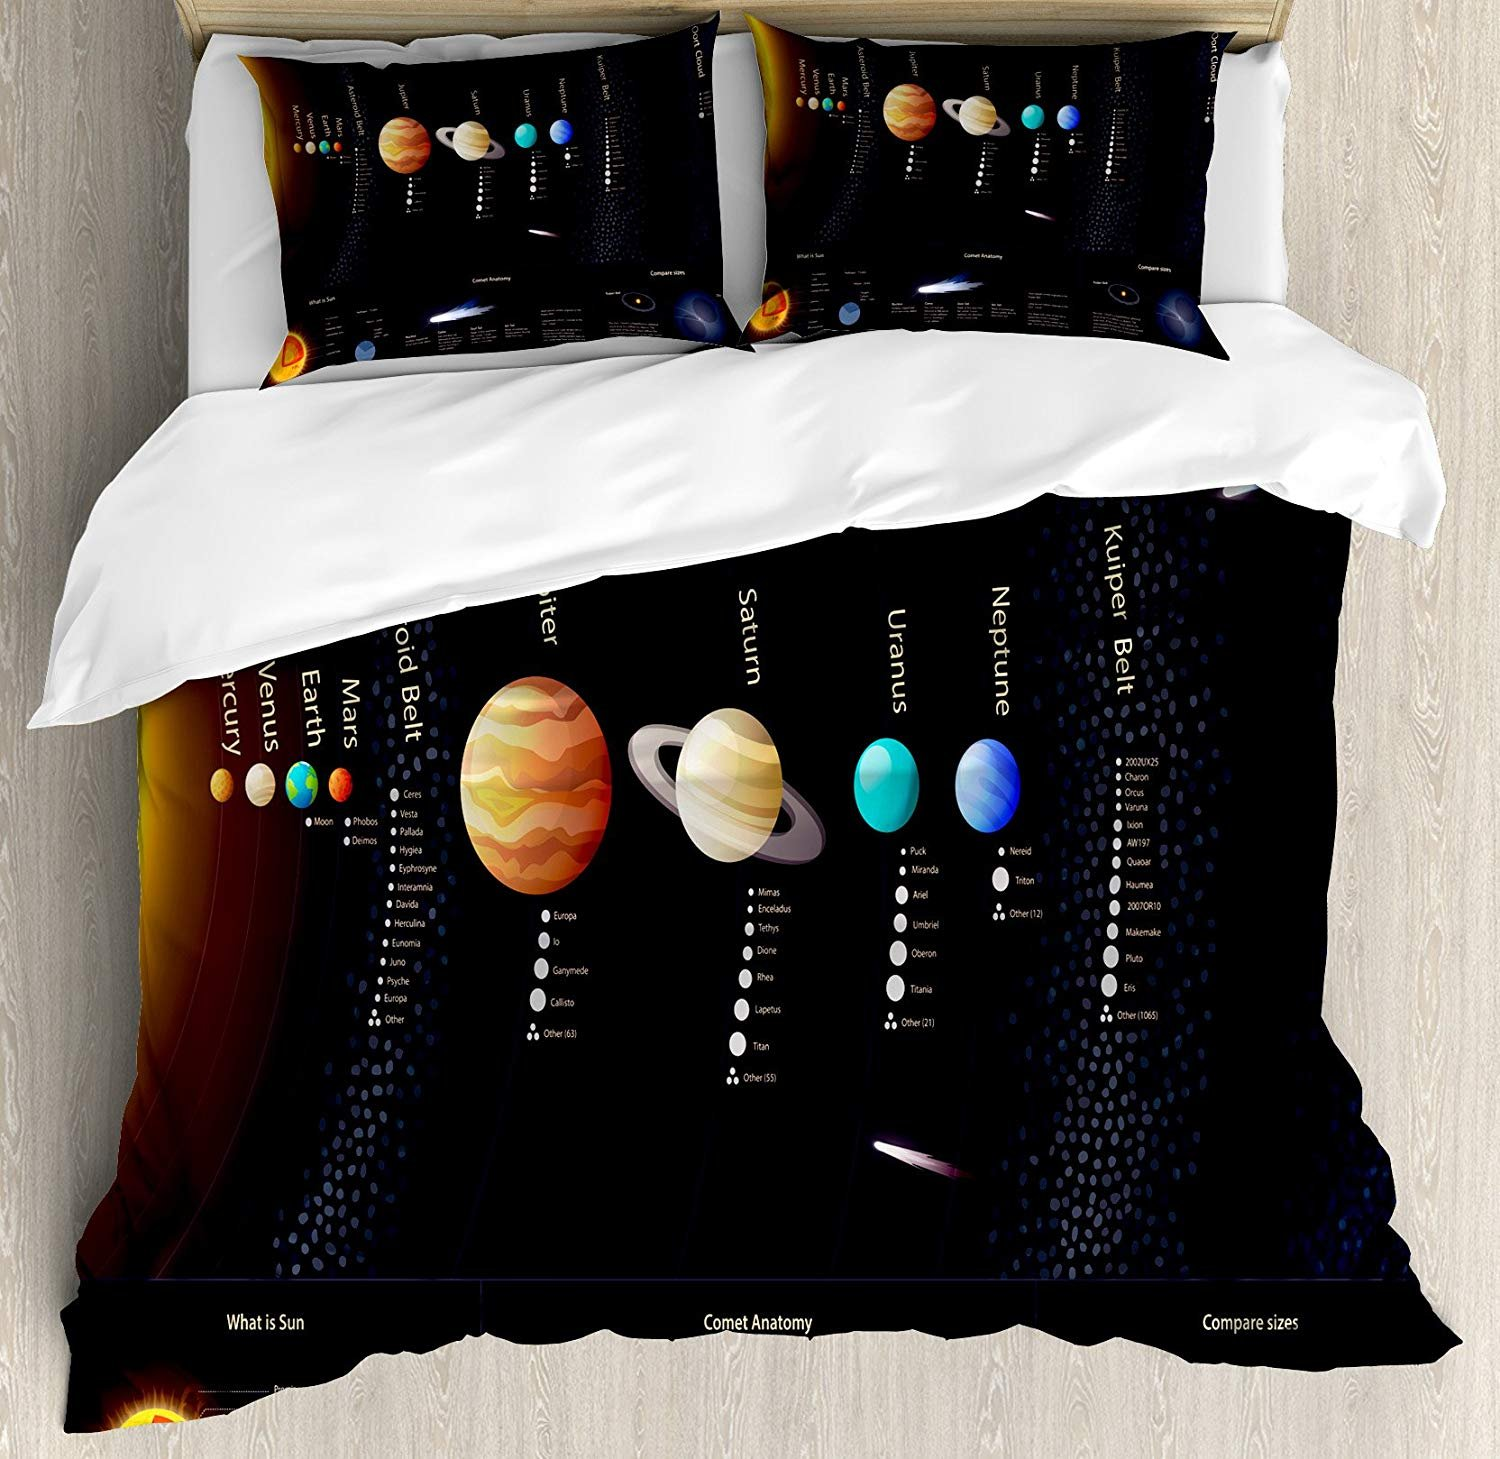 Outer Space Twin Duvet Cover Sets 4 Piece Bedding Set Bedspread with 2 Pillow Sham, Flat Sheet for Adult/Kids/Teens, Solar System Scientific Information Jupiter Saturn Universe Telescope Print